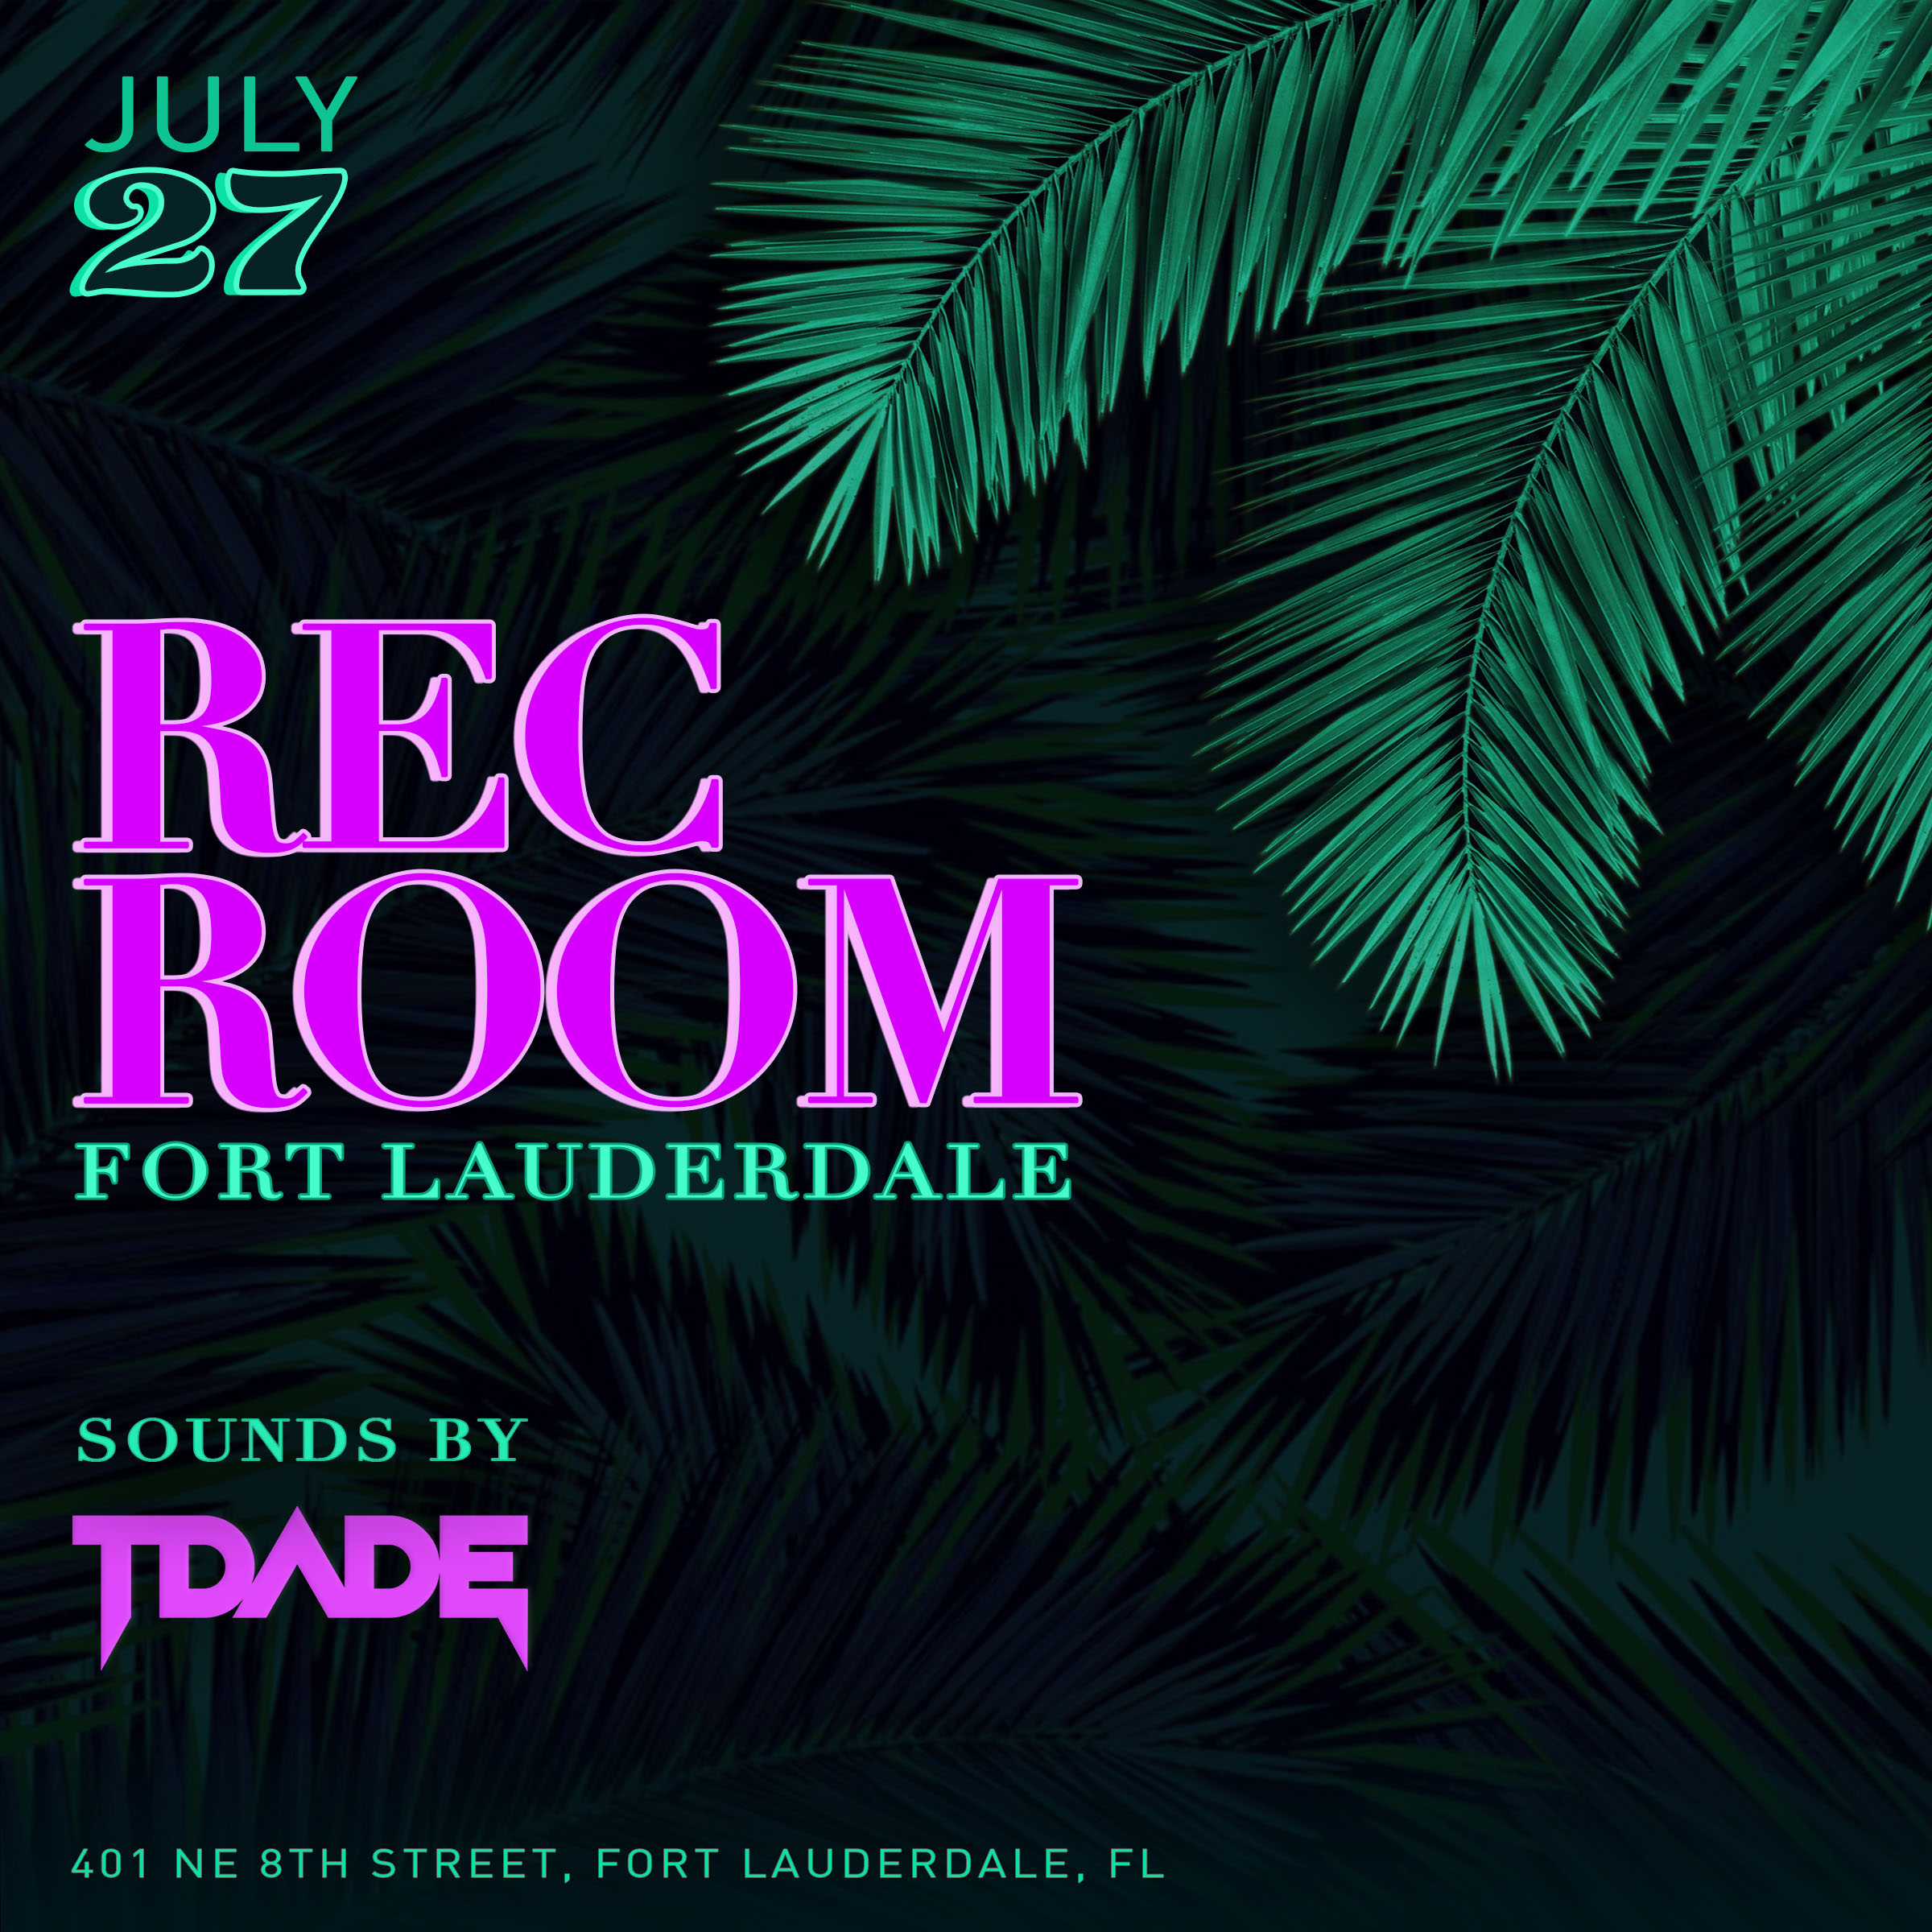 7.27.19 RecRoom Flier Sounds by TDade.jpg